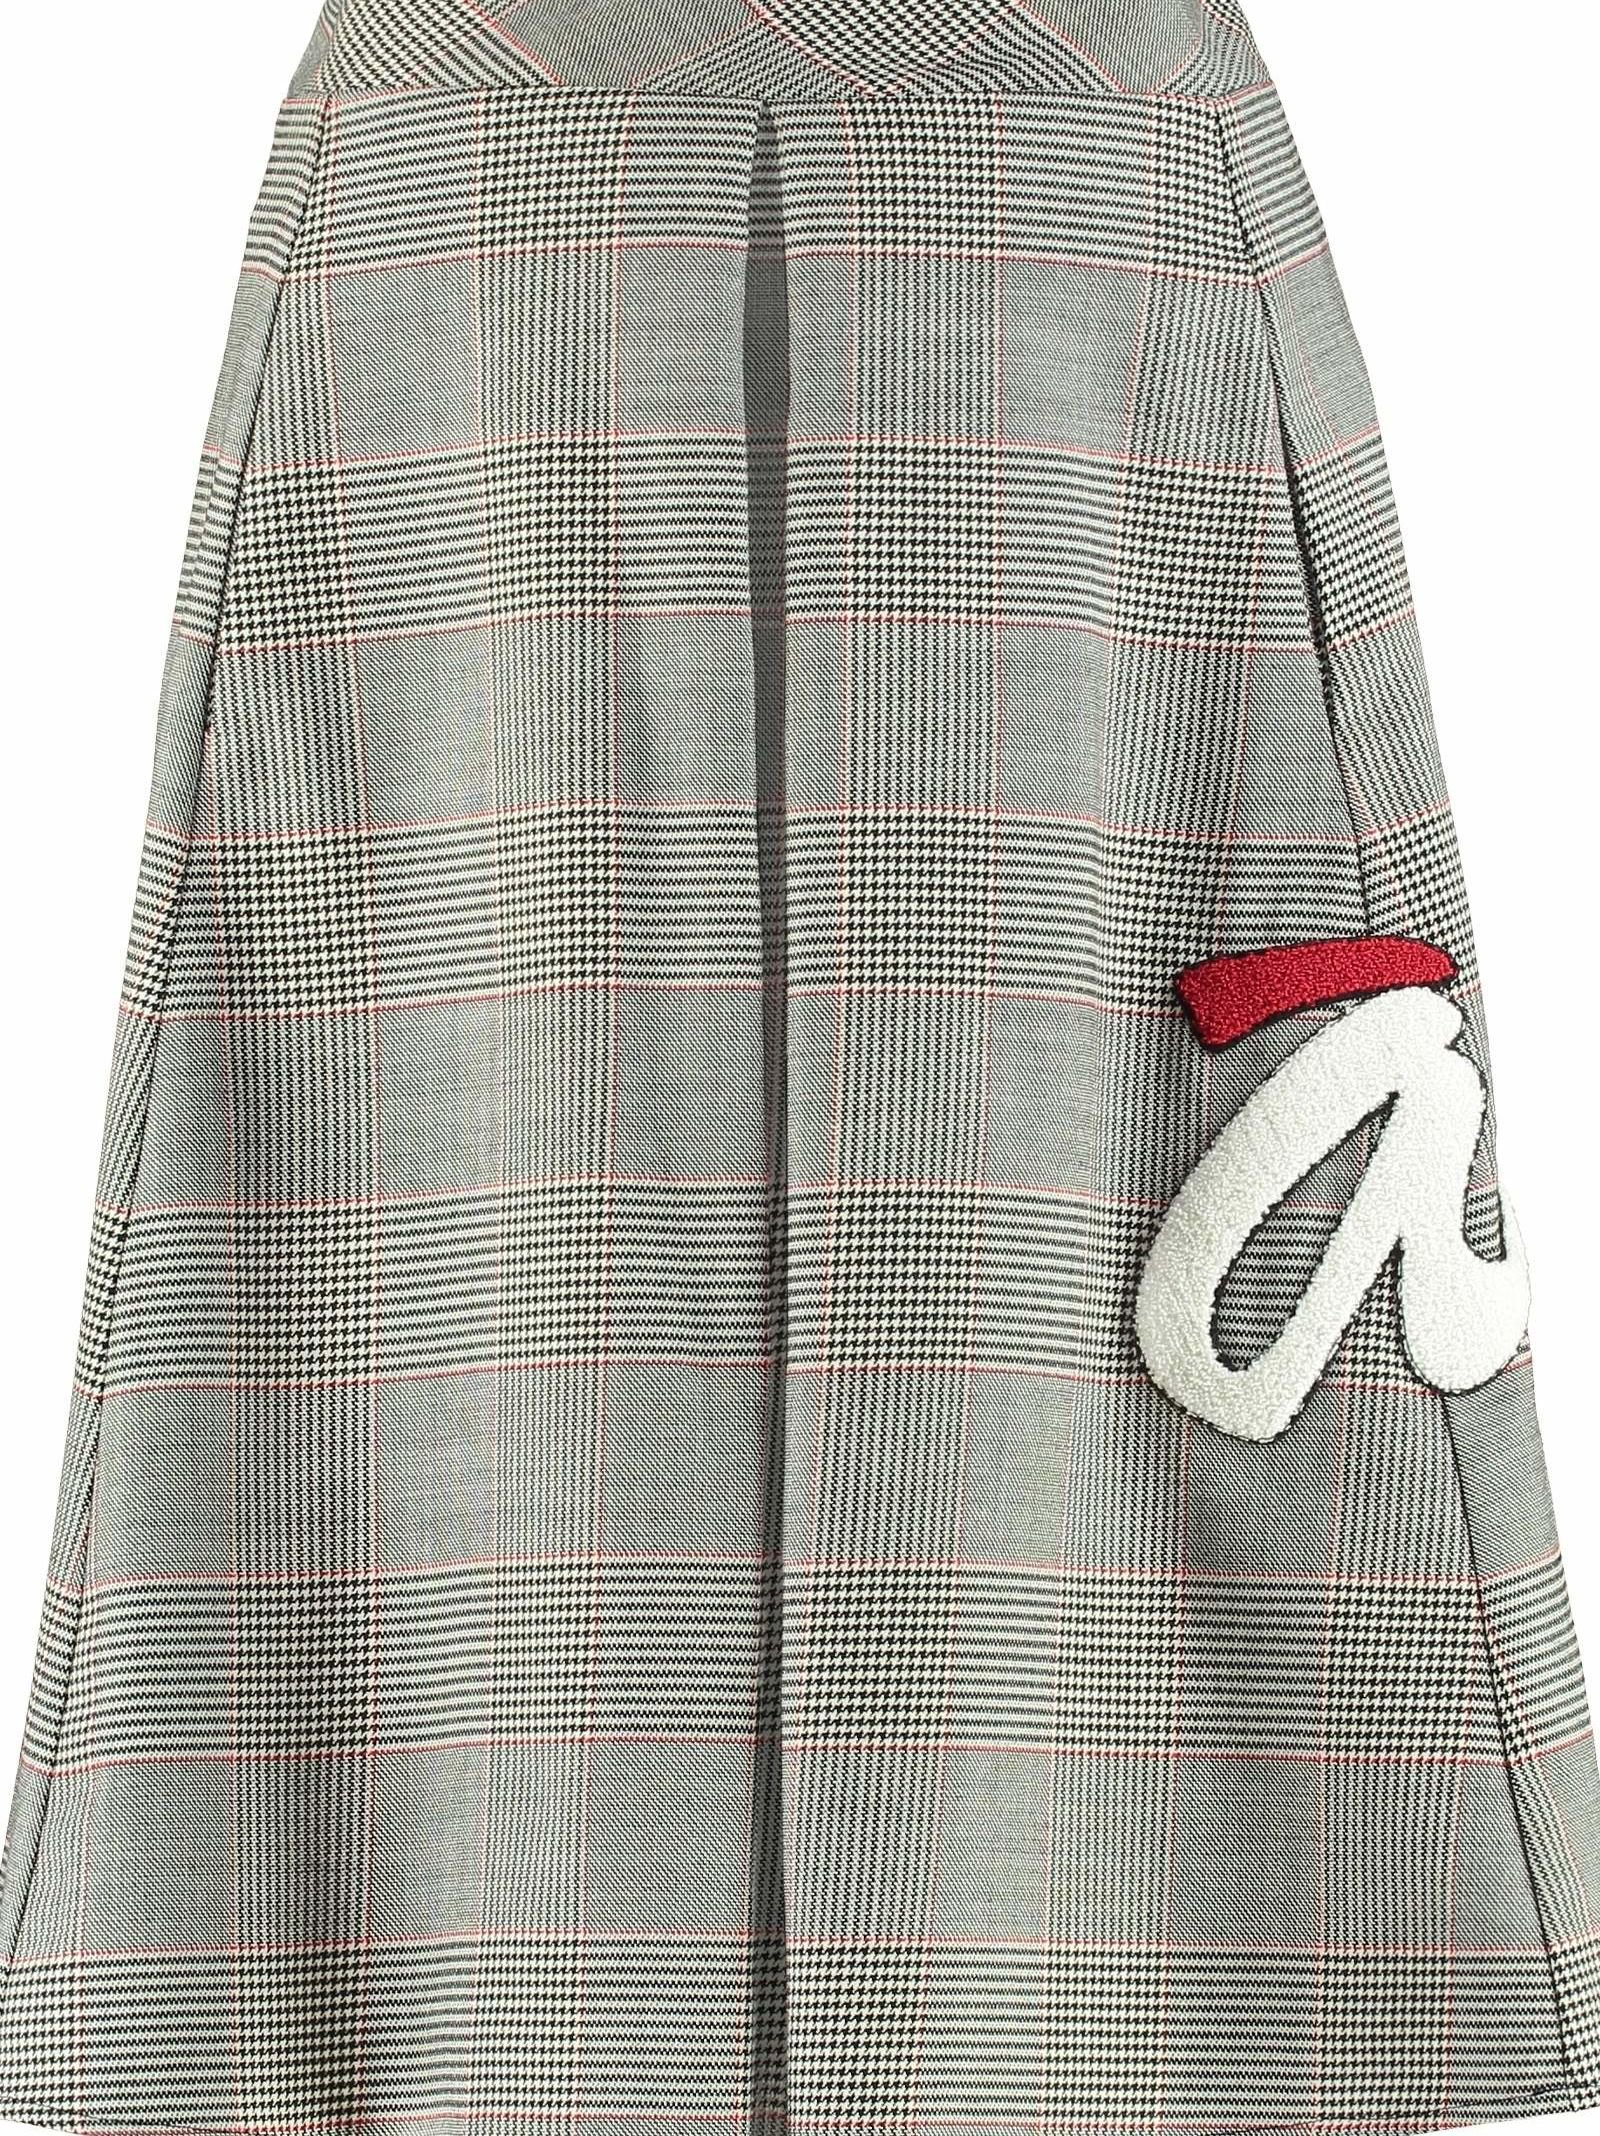 Ultrachic Tartan Motif Wool Skirt